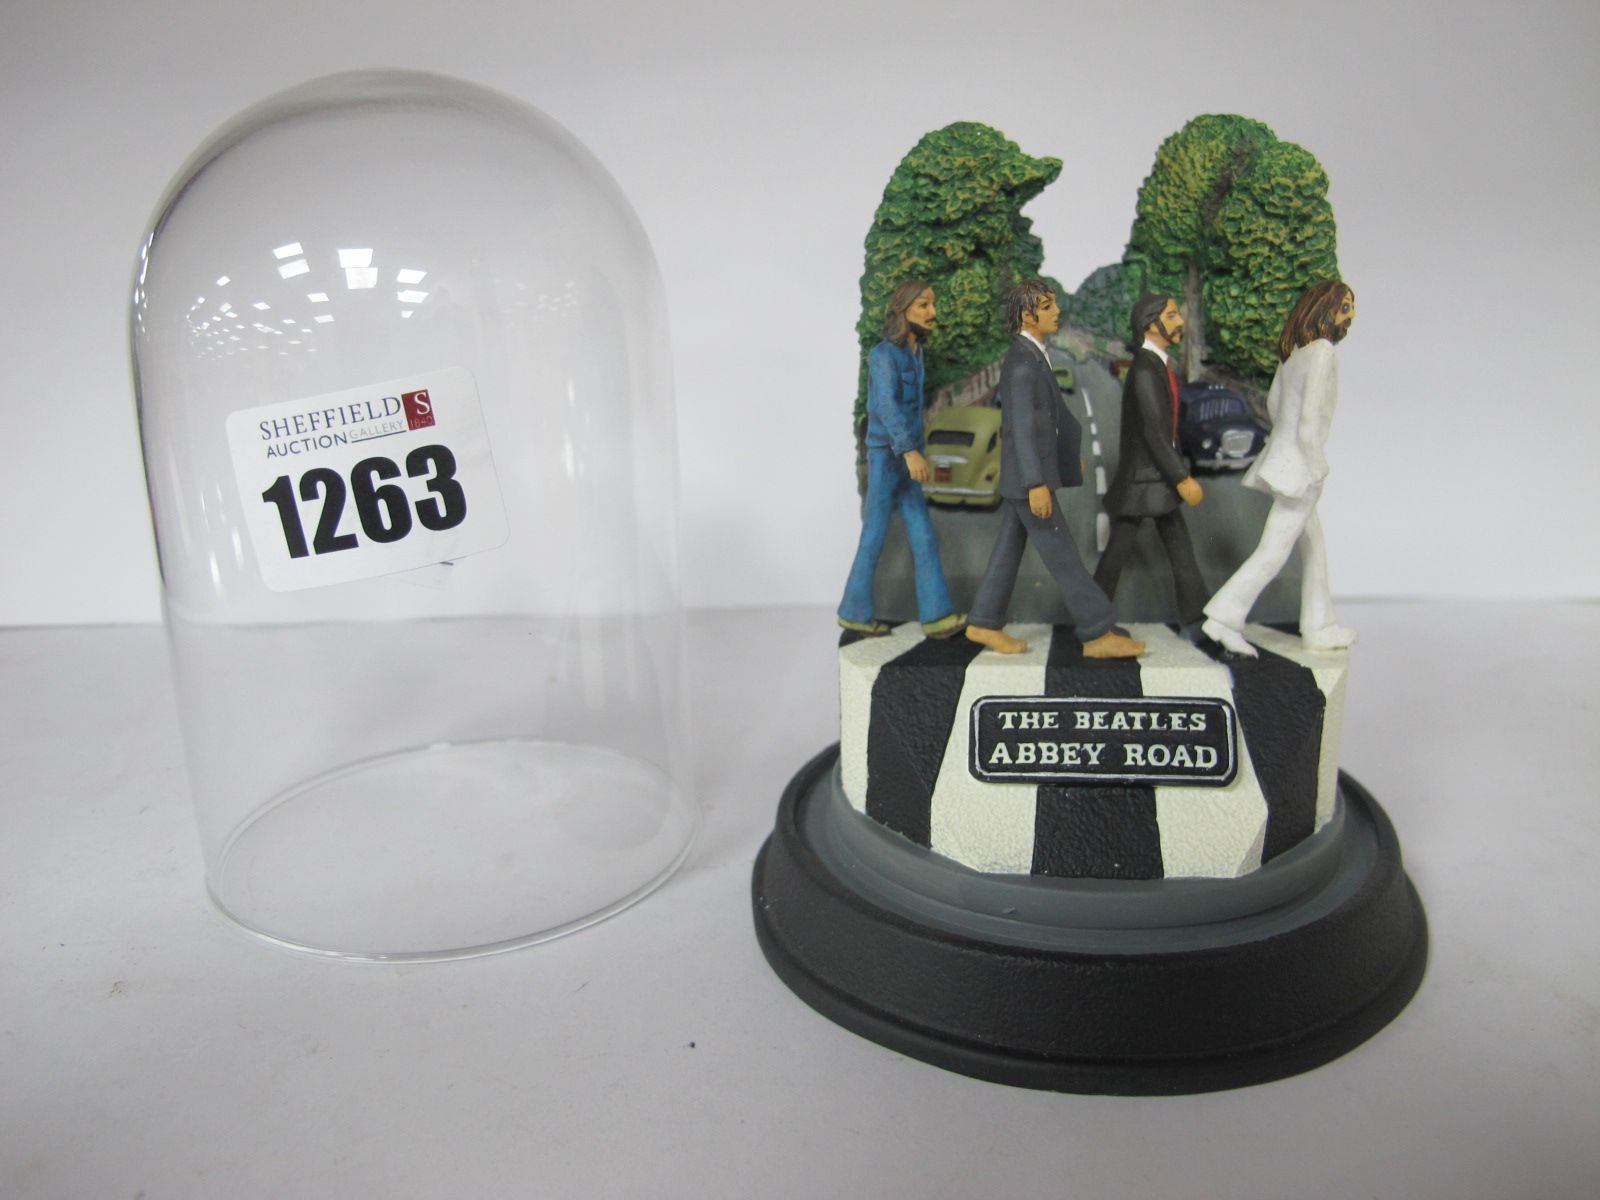 The Beatles Franklin Mint 'Abbey Road' Model, under glass dome 11cm high overall.